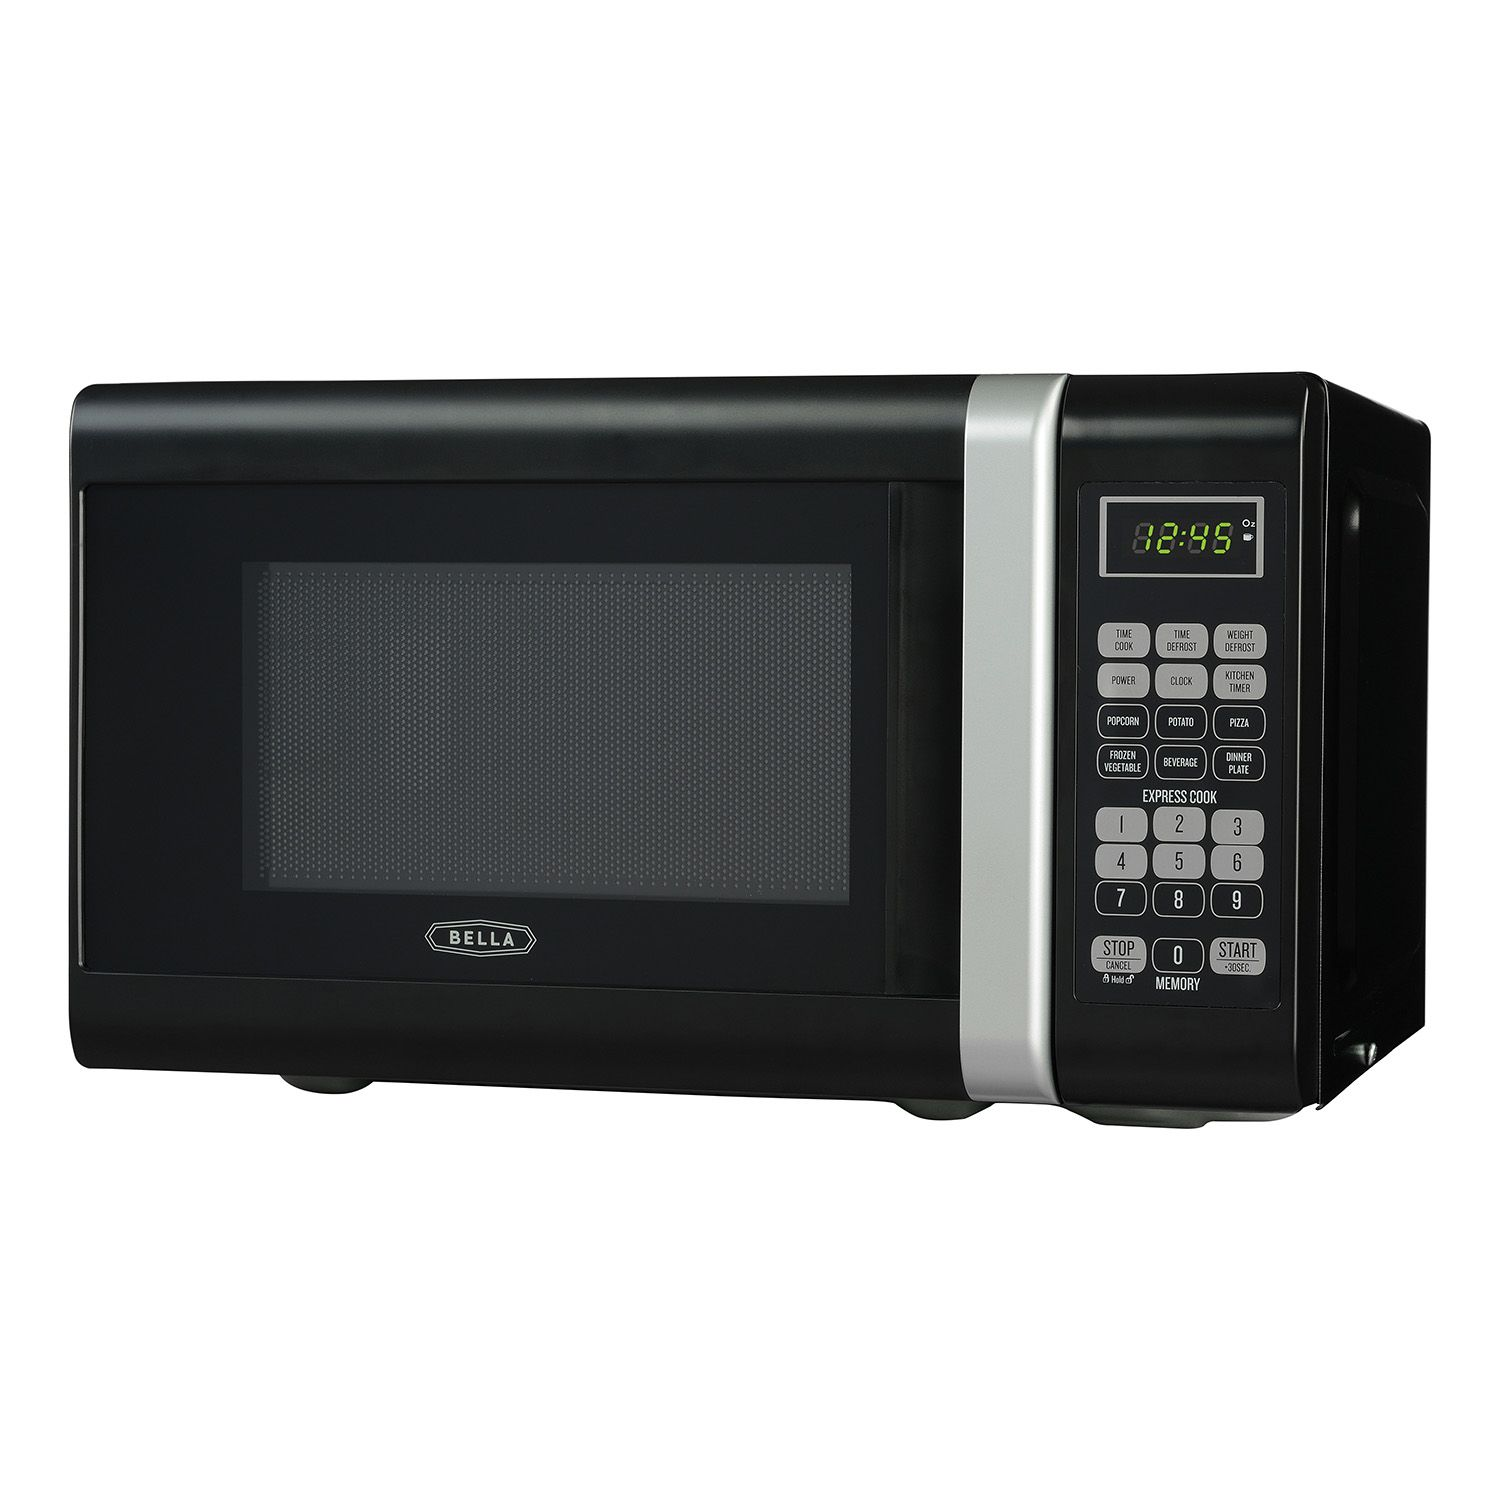 Superieur Bella 700 Watt Microwave Oven